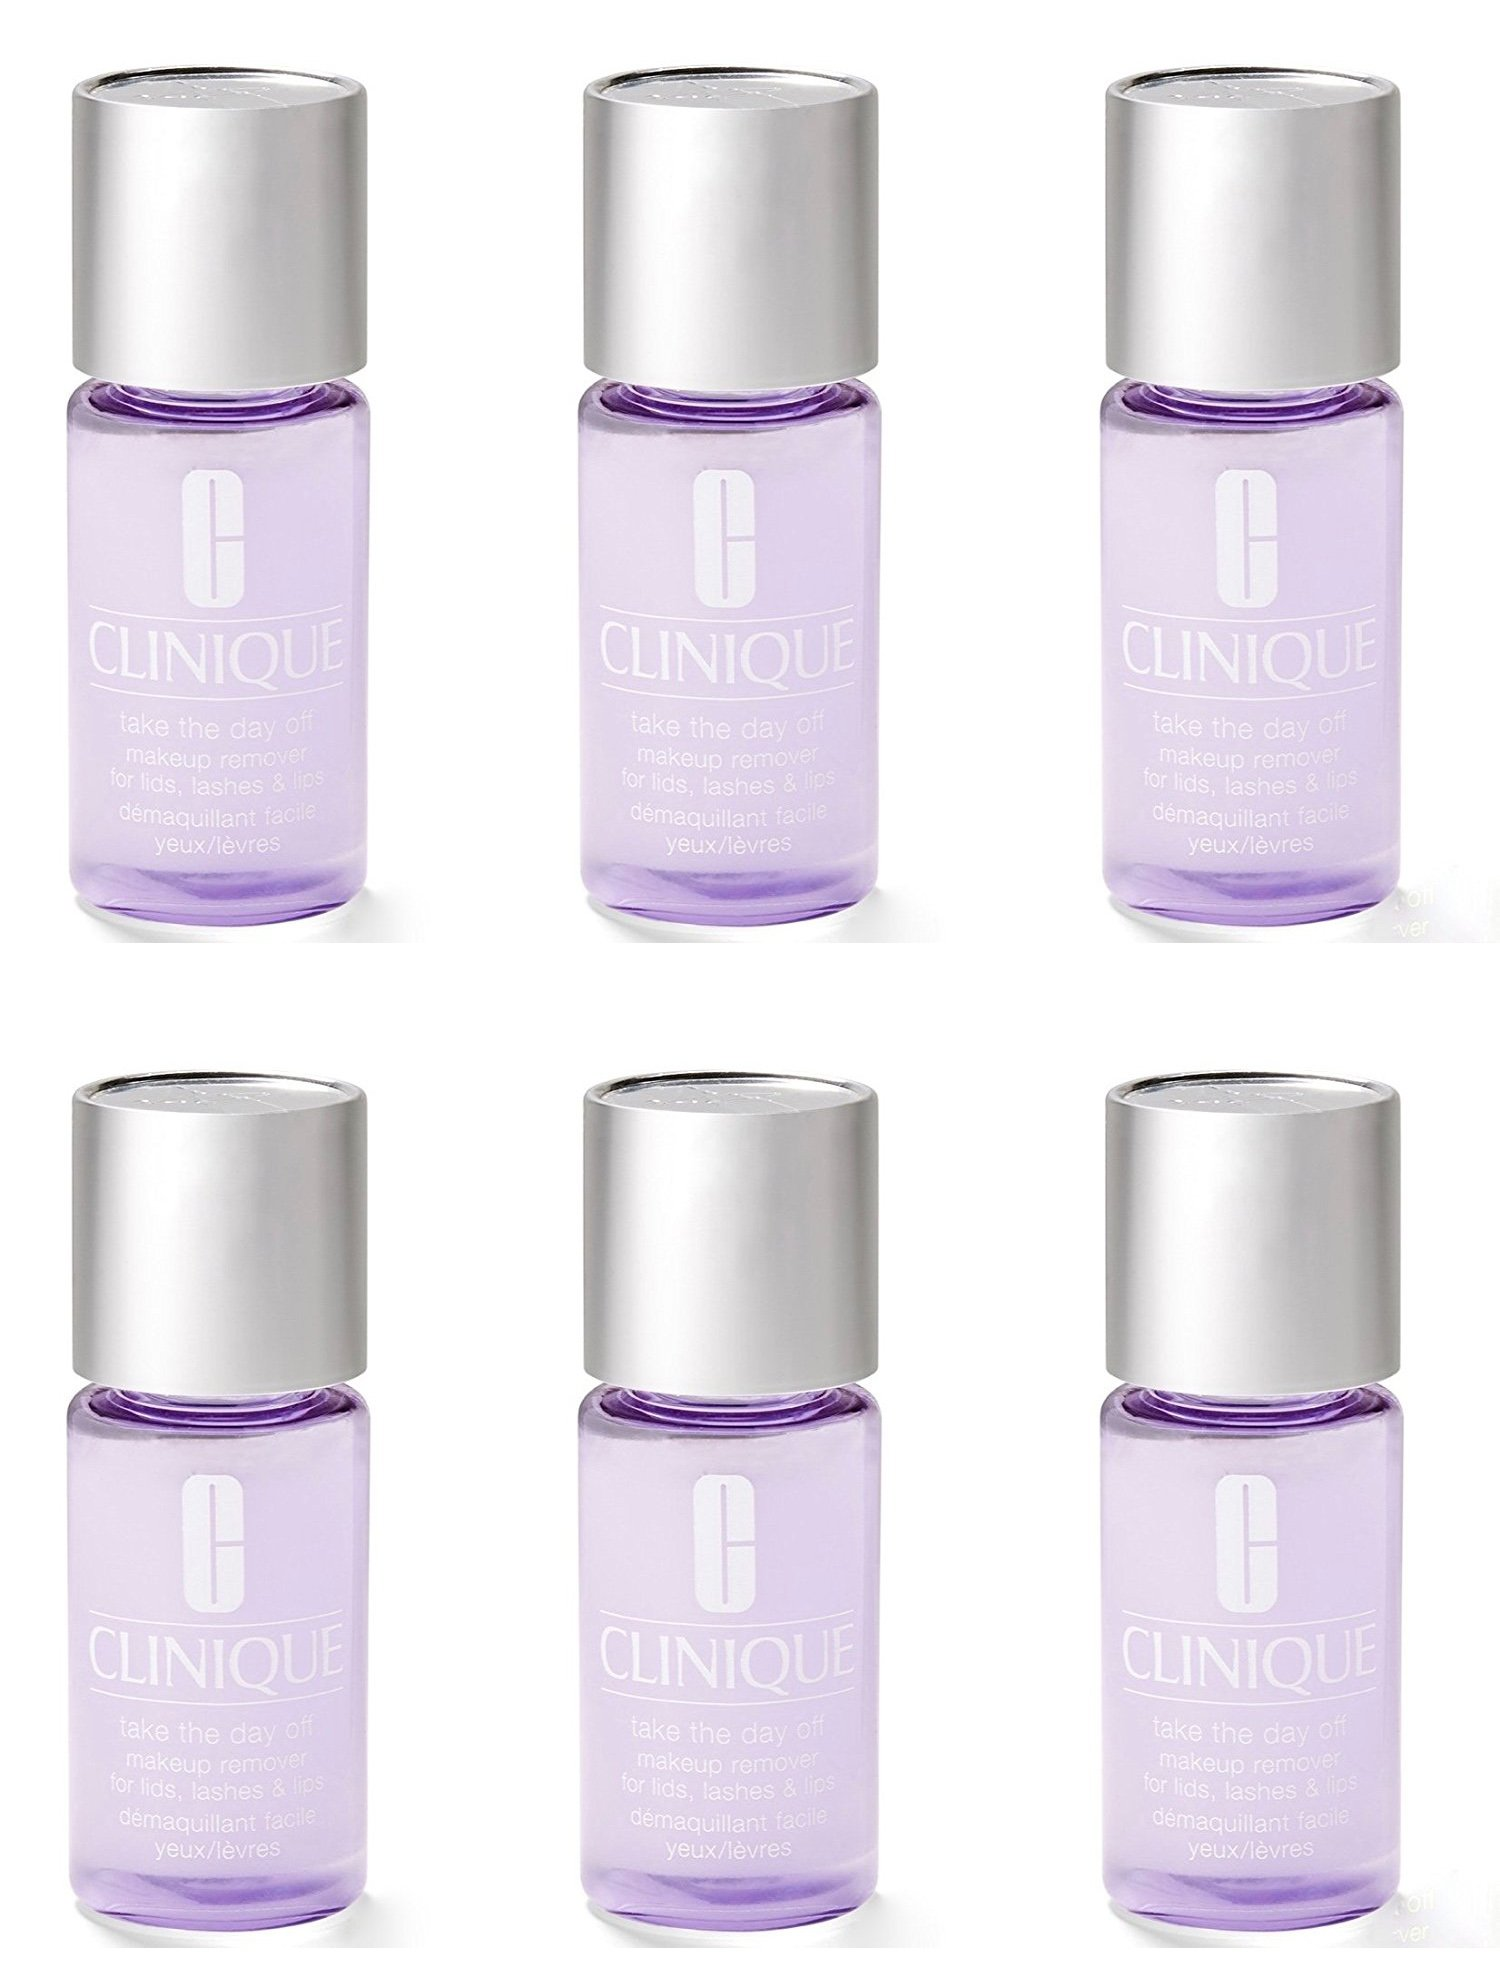 6 x Clinique Take The Day Off Makeup Remover 1oz / 30ml, Totals 6oz